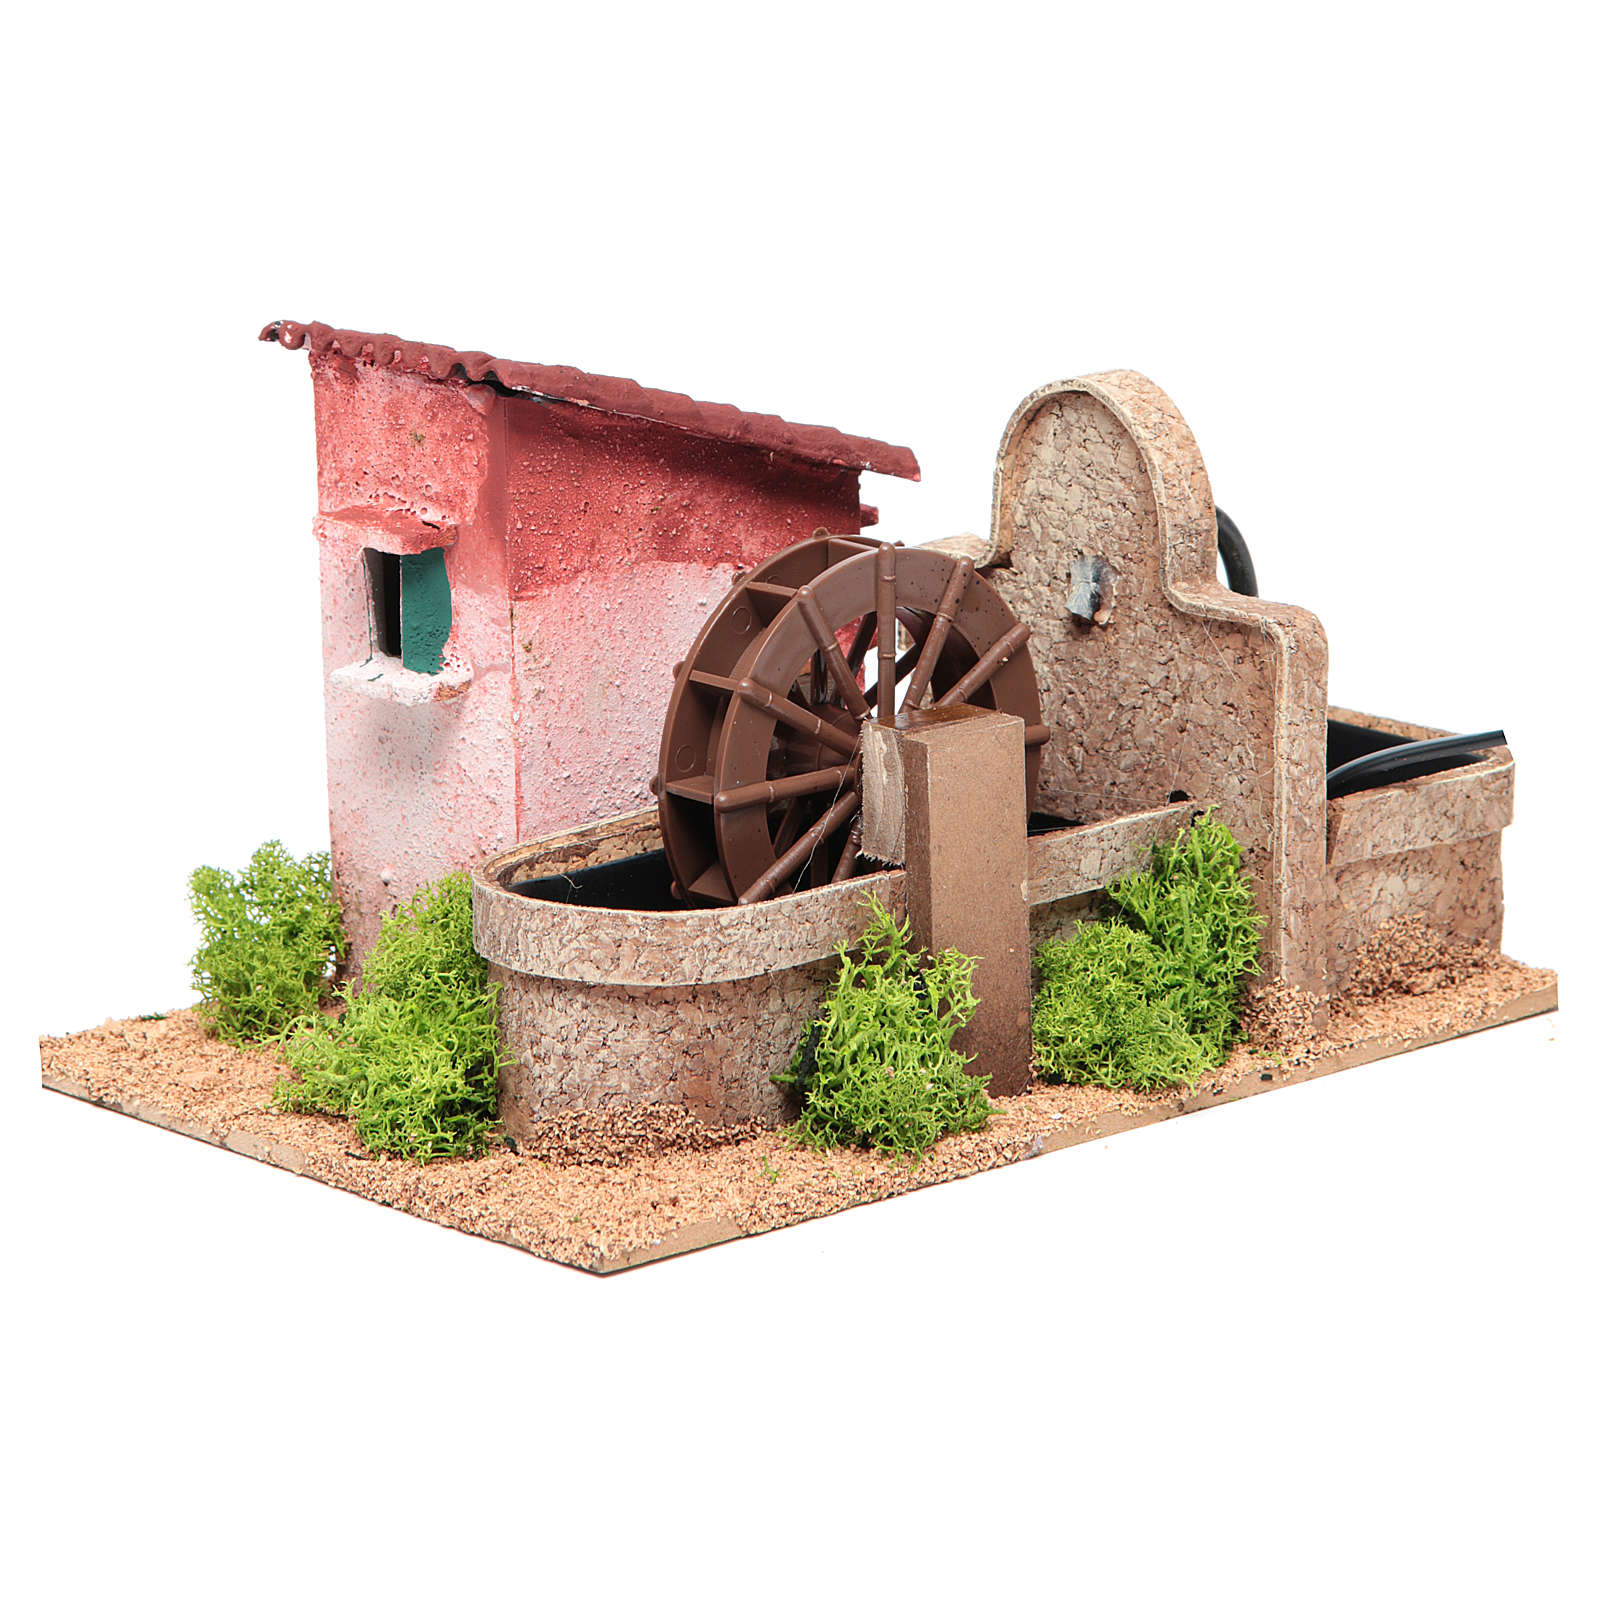 Water mill for nativities measuring 14x25x17cm 4